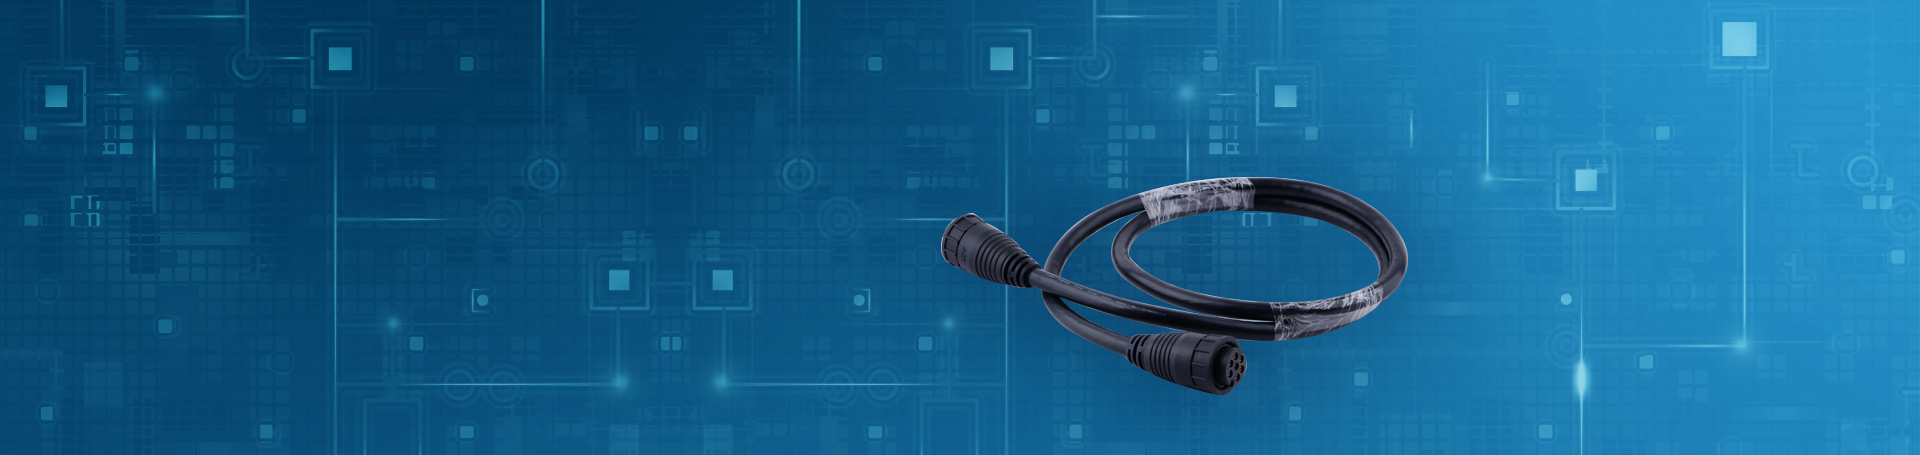 Getronics Singapore Wire Harness Business Welcome To S